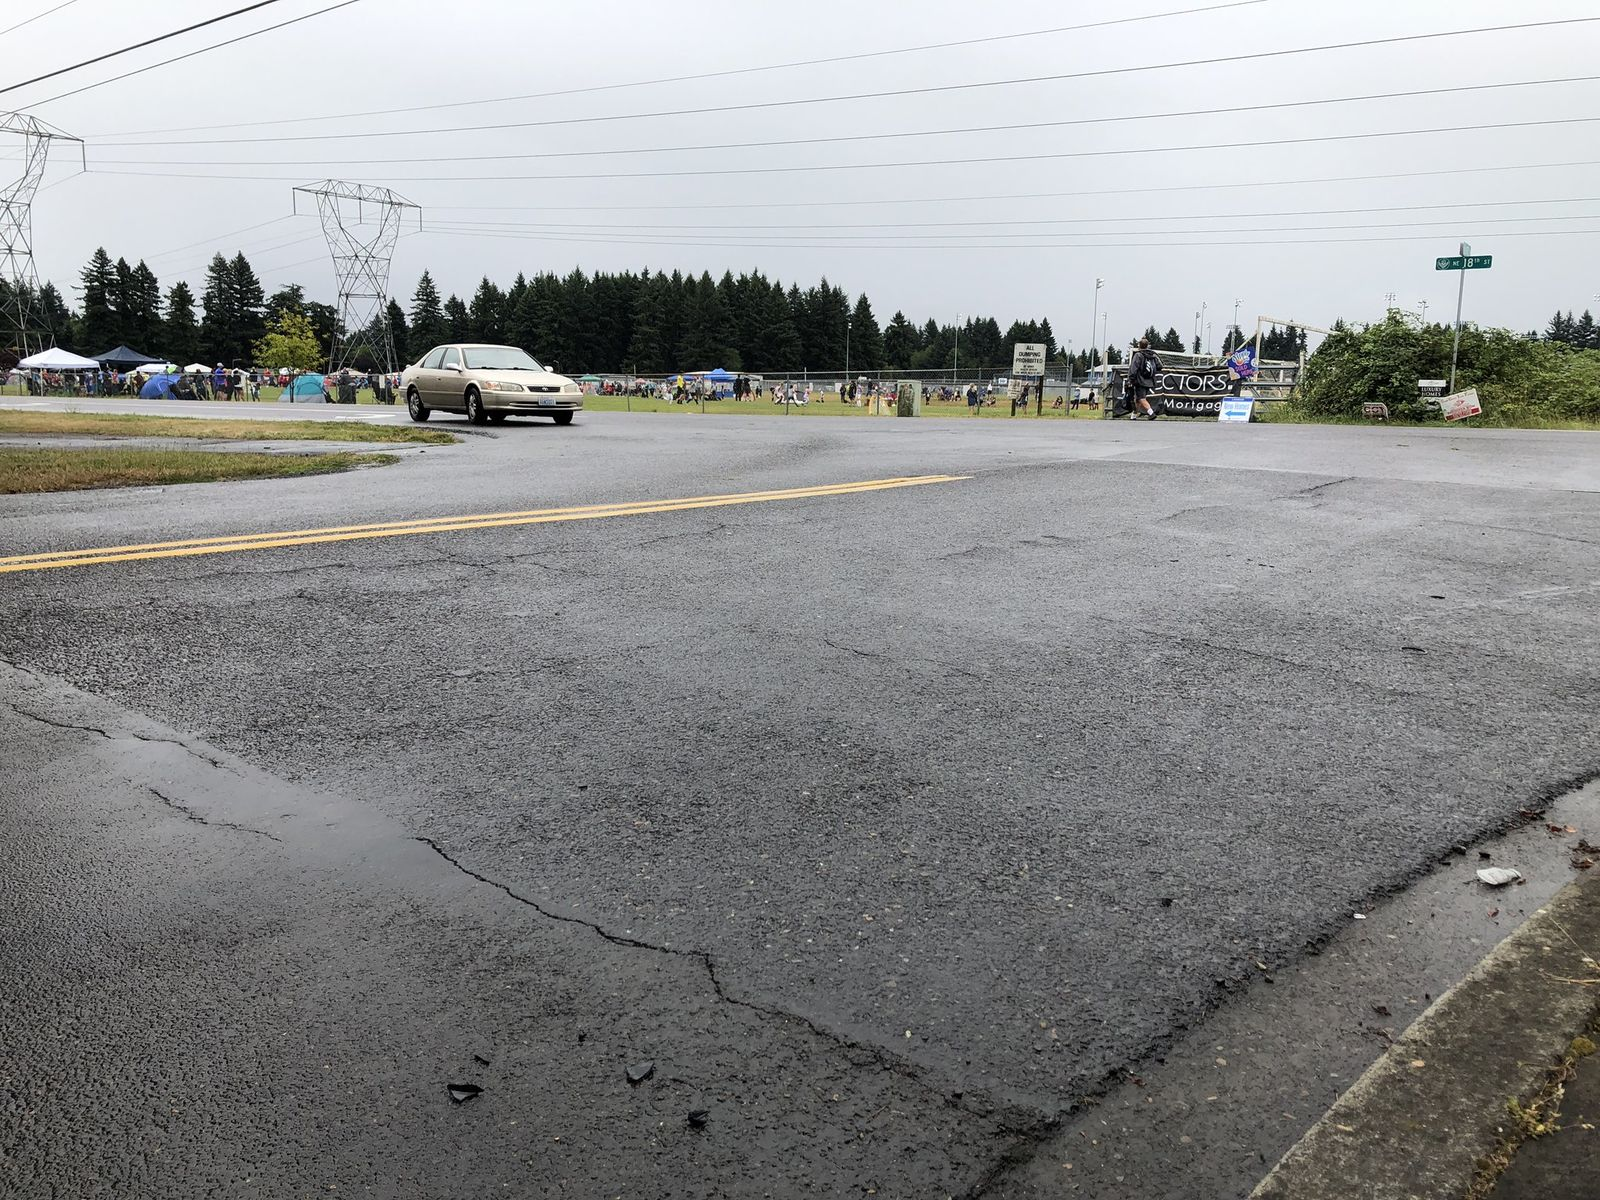 The scene of Friday night's double fatal collision in Vancouver. Photo by Ric Peavyhouse, KATU News